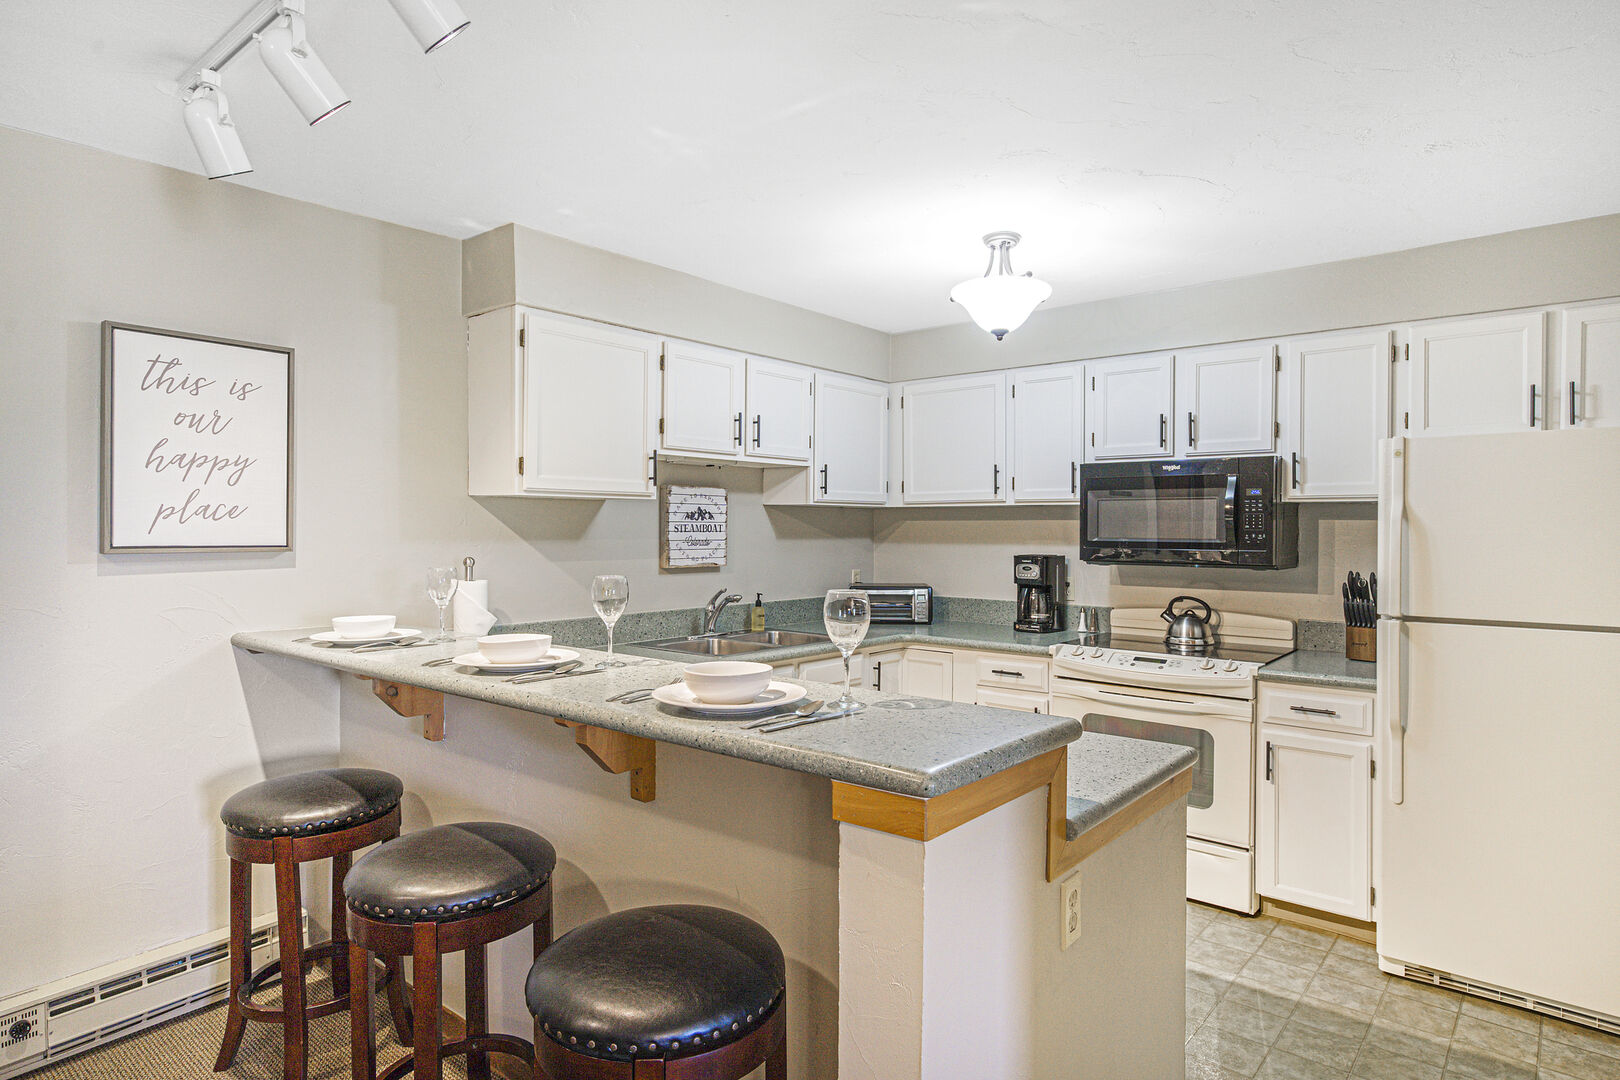 Kitchen with three stools at a gray counter. White cabinets with built-in microwave.